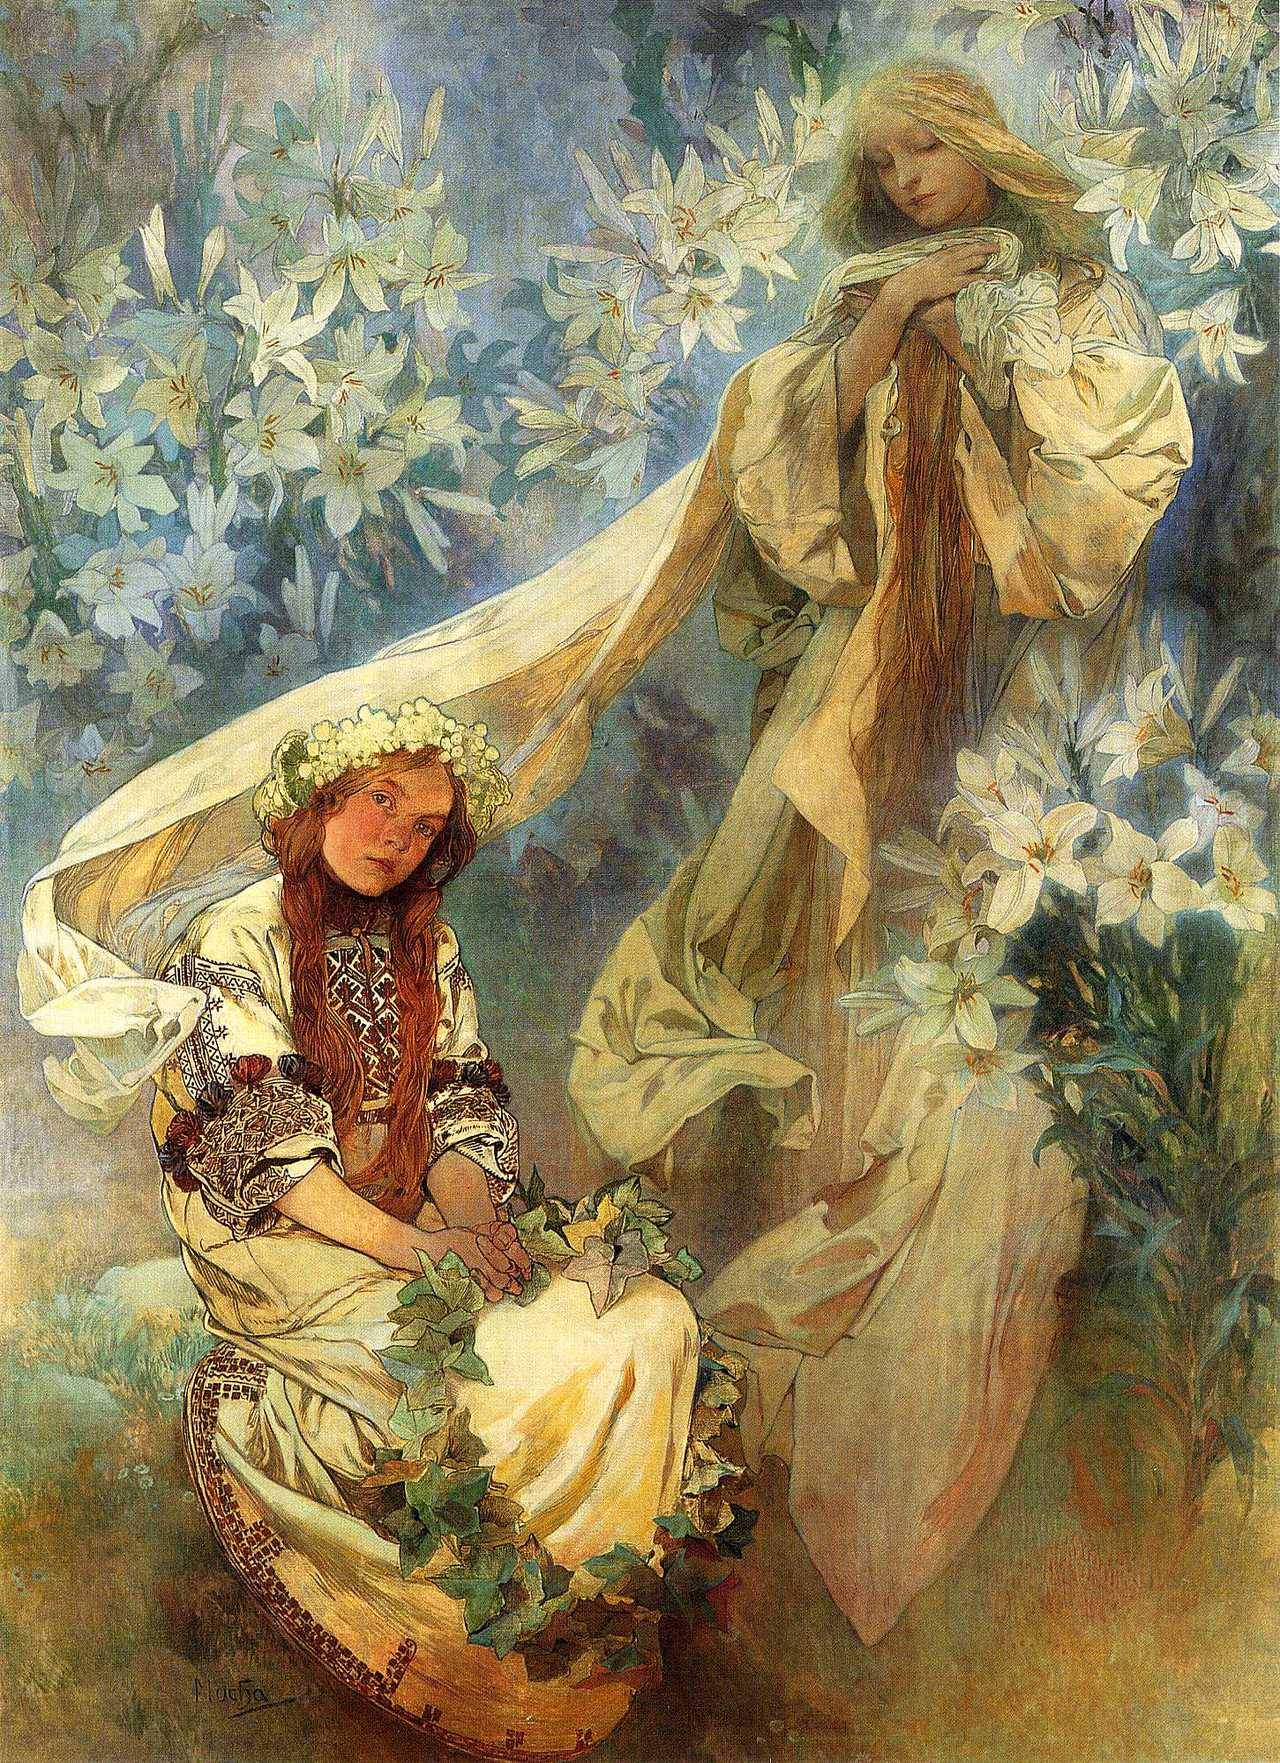 Madonna of the Lilies (1905) by Mucha